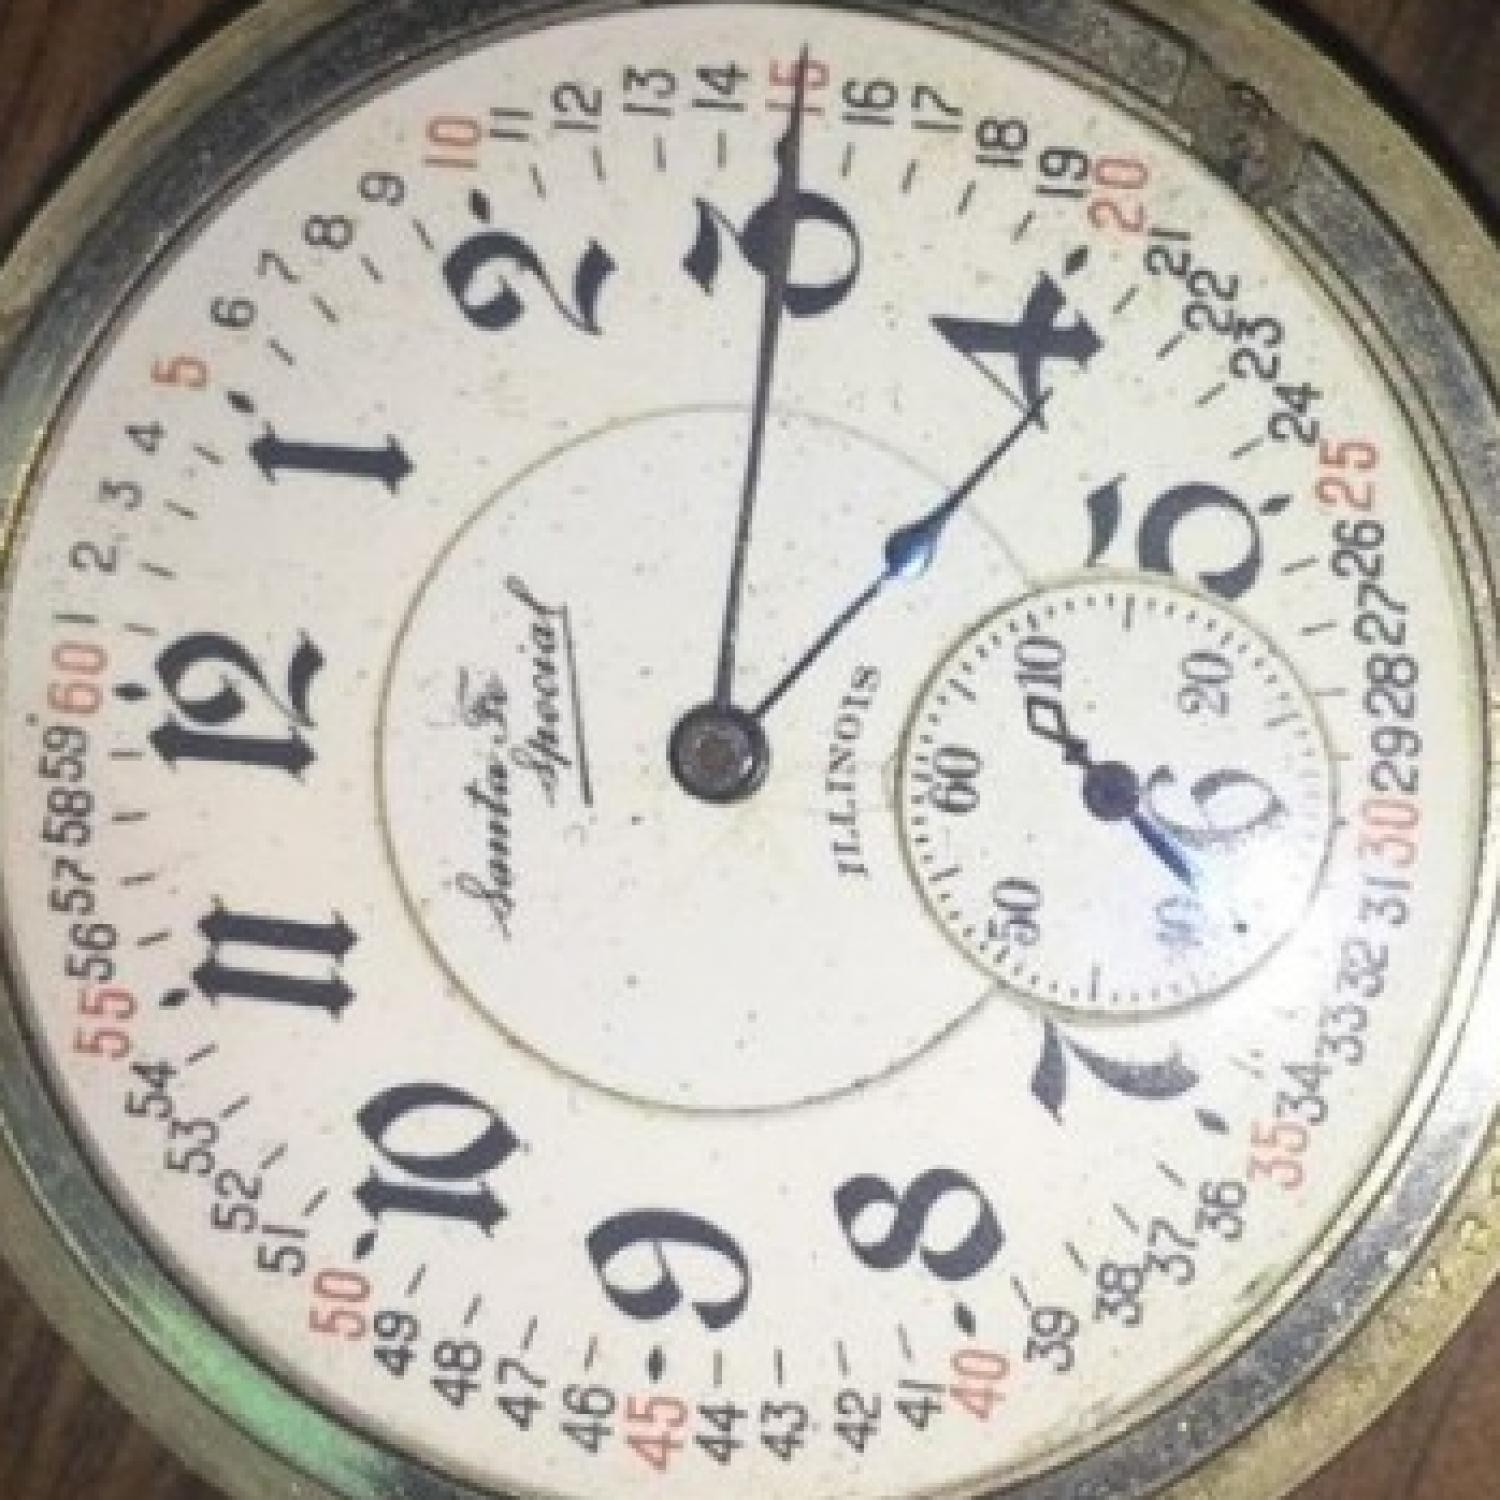 Image of Illinois 806 #2976599 Dial